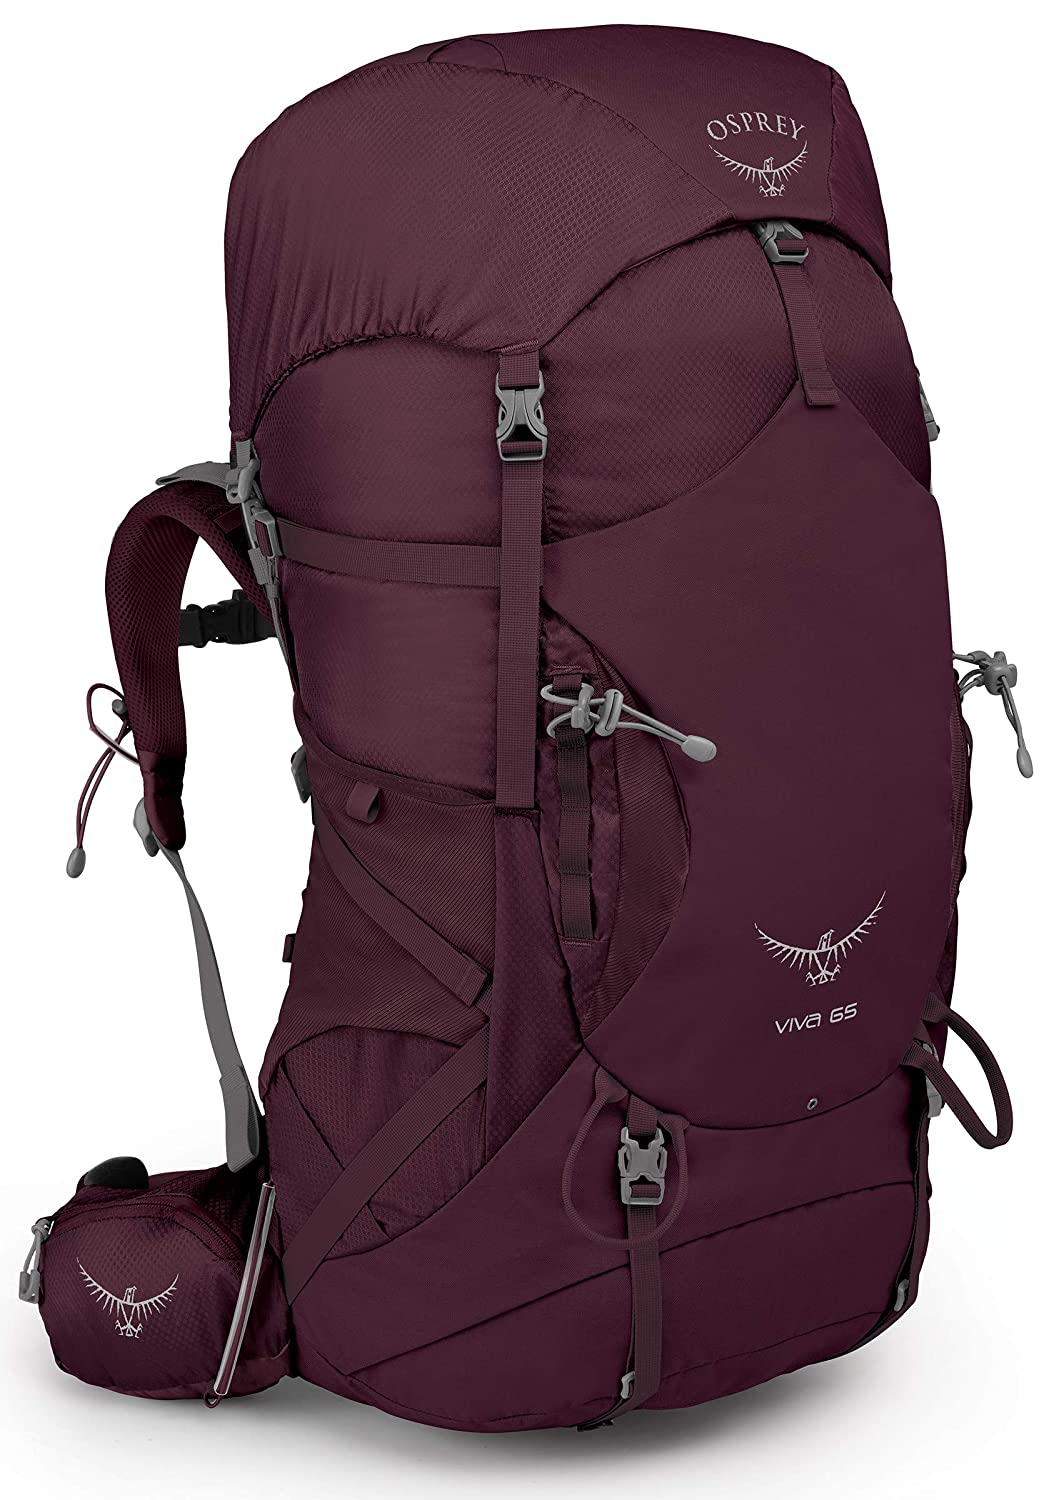 Osprey Packs Viva 65 Women s Backpacking Backpack